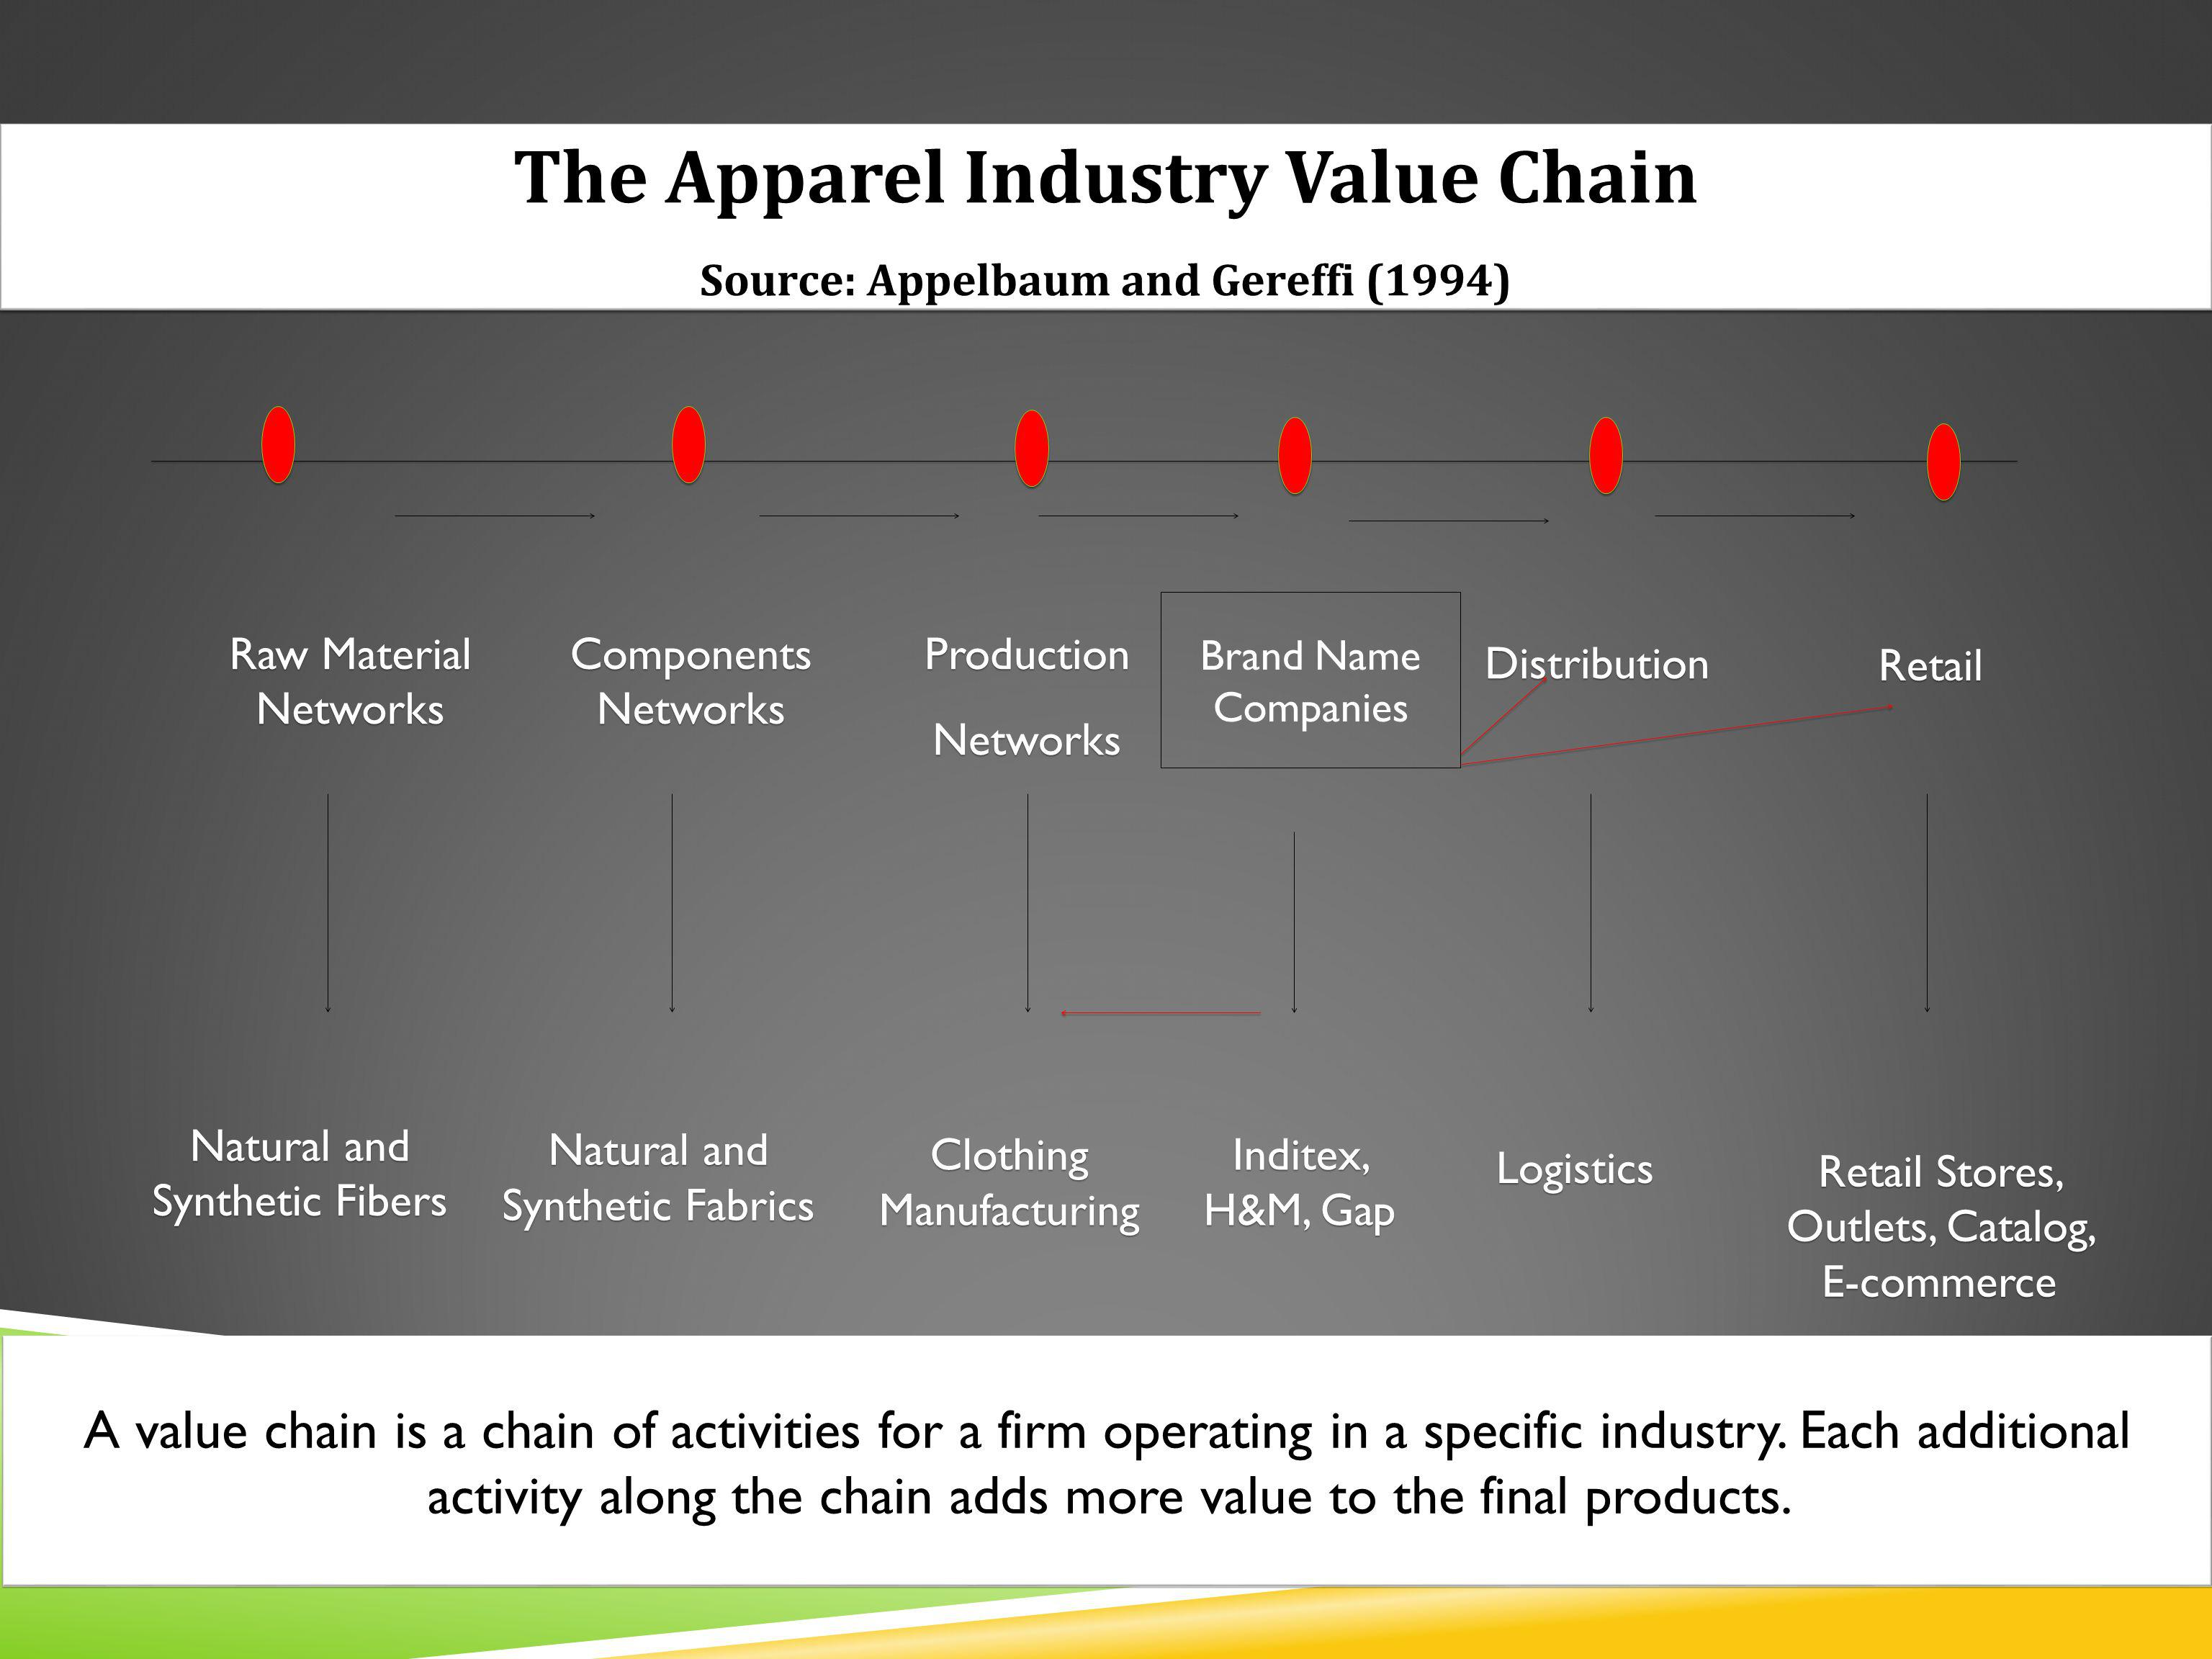 The Apparel Industry Value Chain Source: Appelbaum and Gereffi (1994) The Apparel Industry Value Chain Source: Appelbaum and Gereffi (1994) Retail Stores, Outlets, Catalog, E-commerce Raw Material Networks Natural and Synthetic Fibers Components Networks Natural and Synthetic Fabrics Production Networks Production Networks Clothing Manufacturing Brand Name Companies Inditex, H&M, Gap Inditex, H&M, Gap Distribution Retail Logistics Logistics A value chain is a chain of activities for a firm operating in a specific industry.